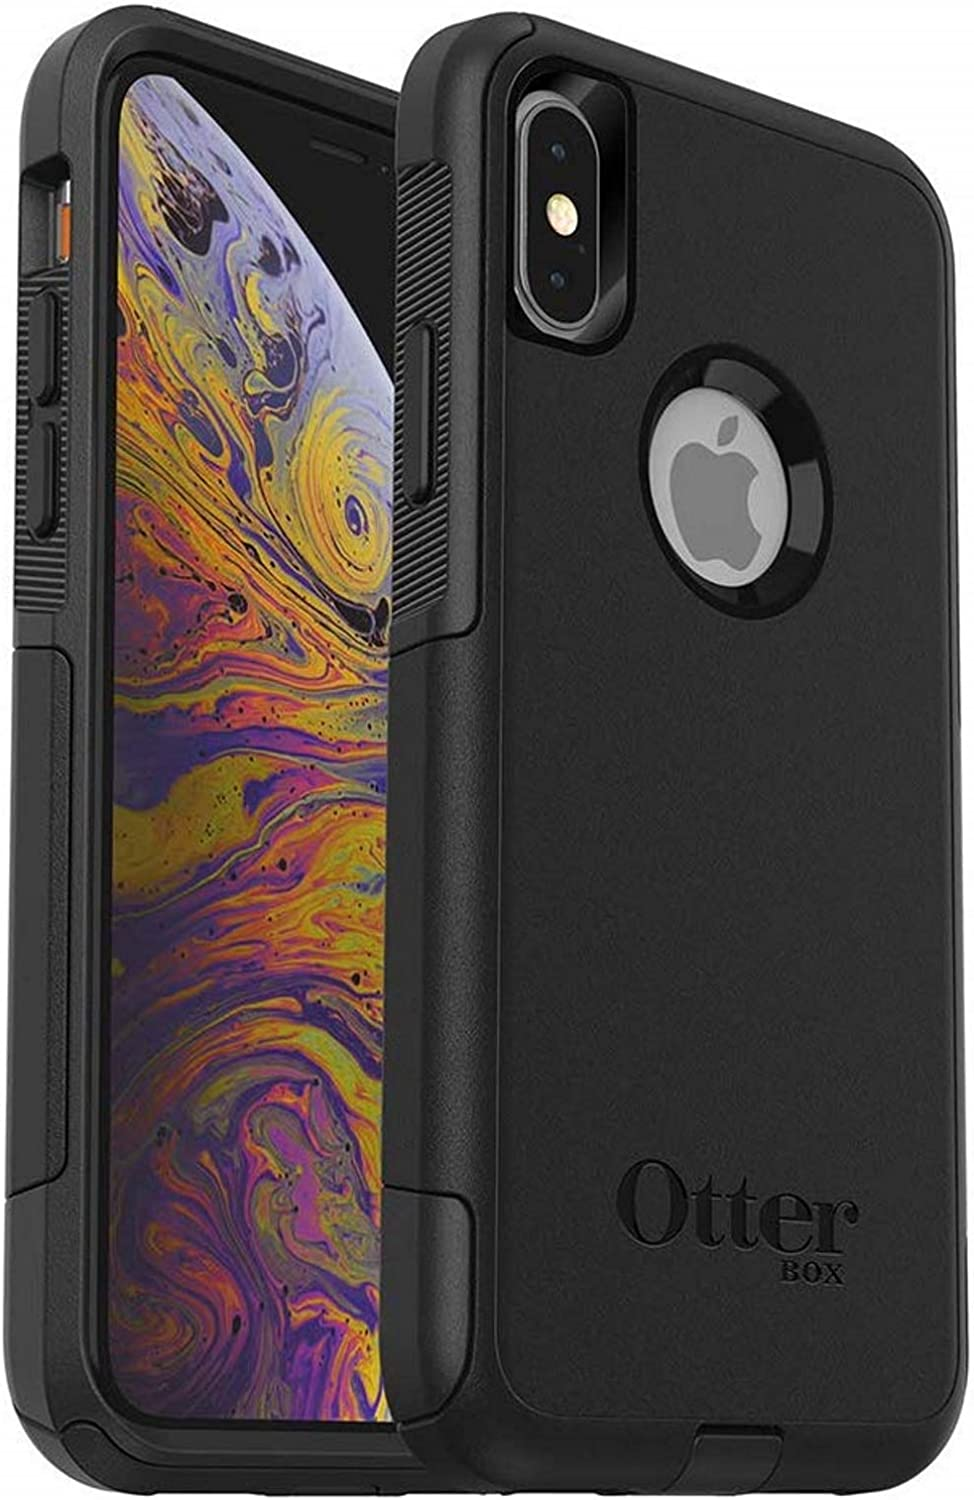 OtterBox Commuter Series Case for iPhone Xs & iPhone X - Bulk Packaging - Black